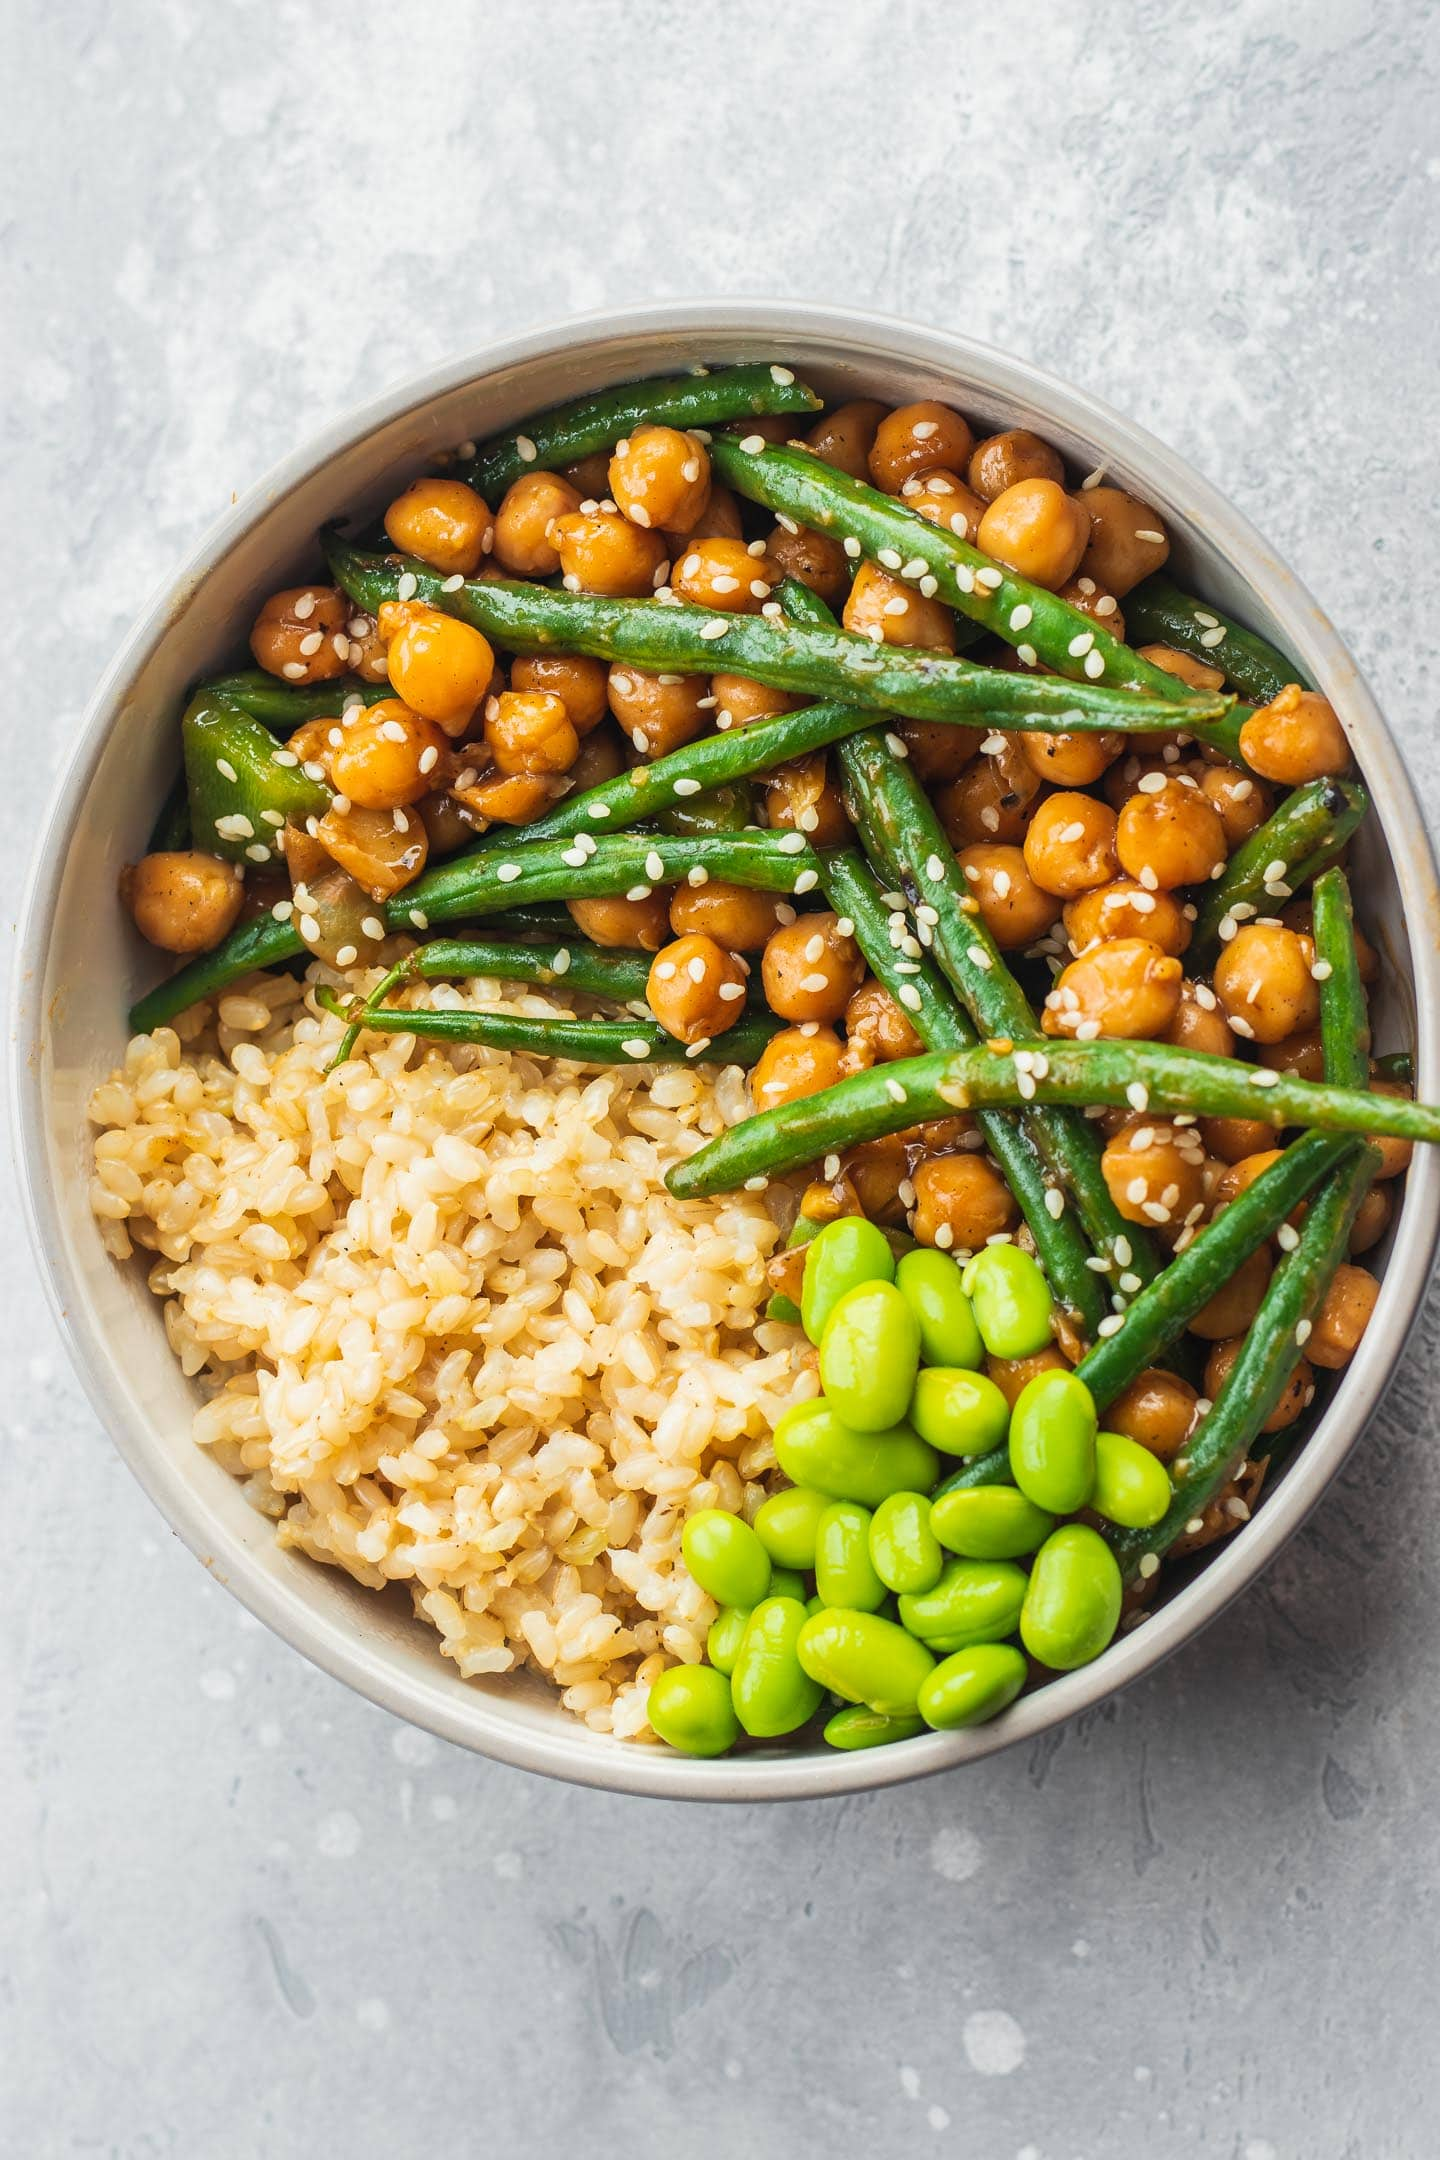 Vegan sweet and sour chickpeas and green beans gluten-free